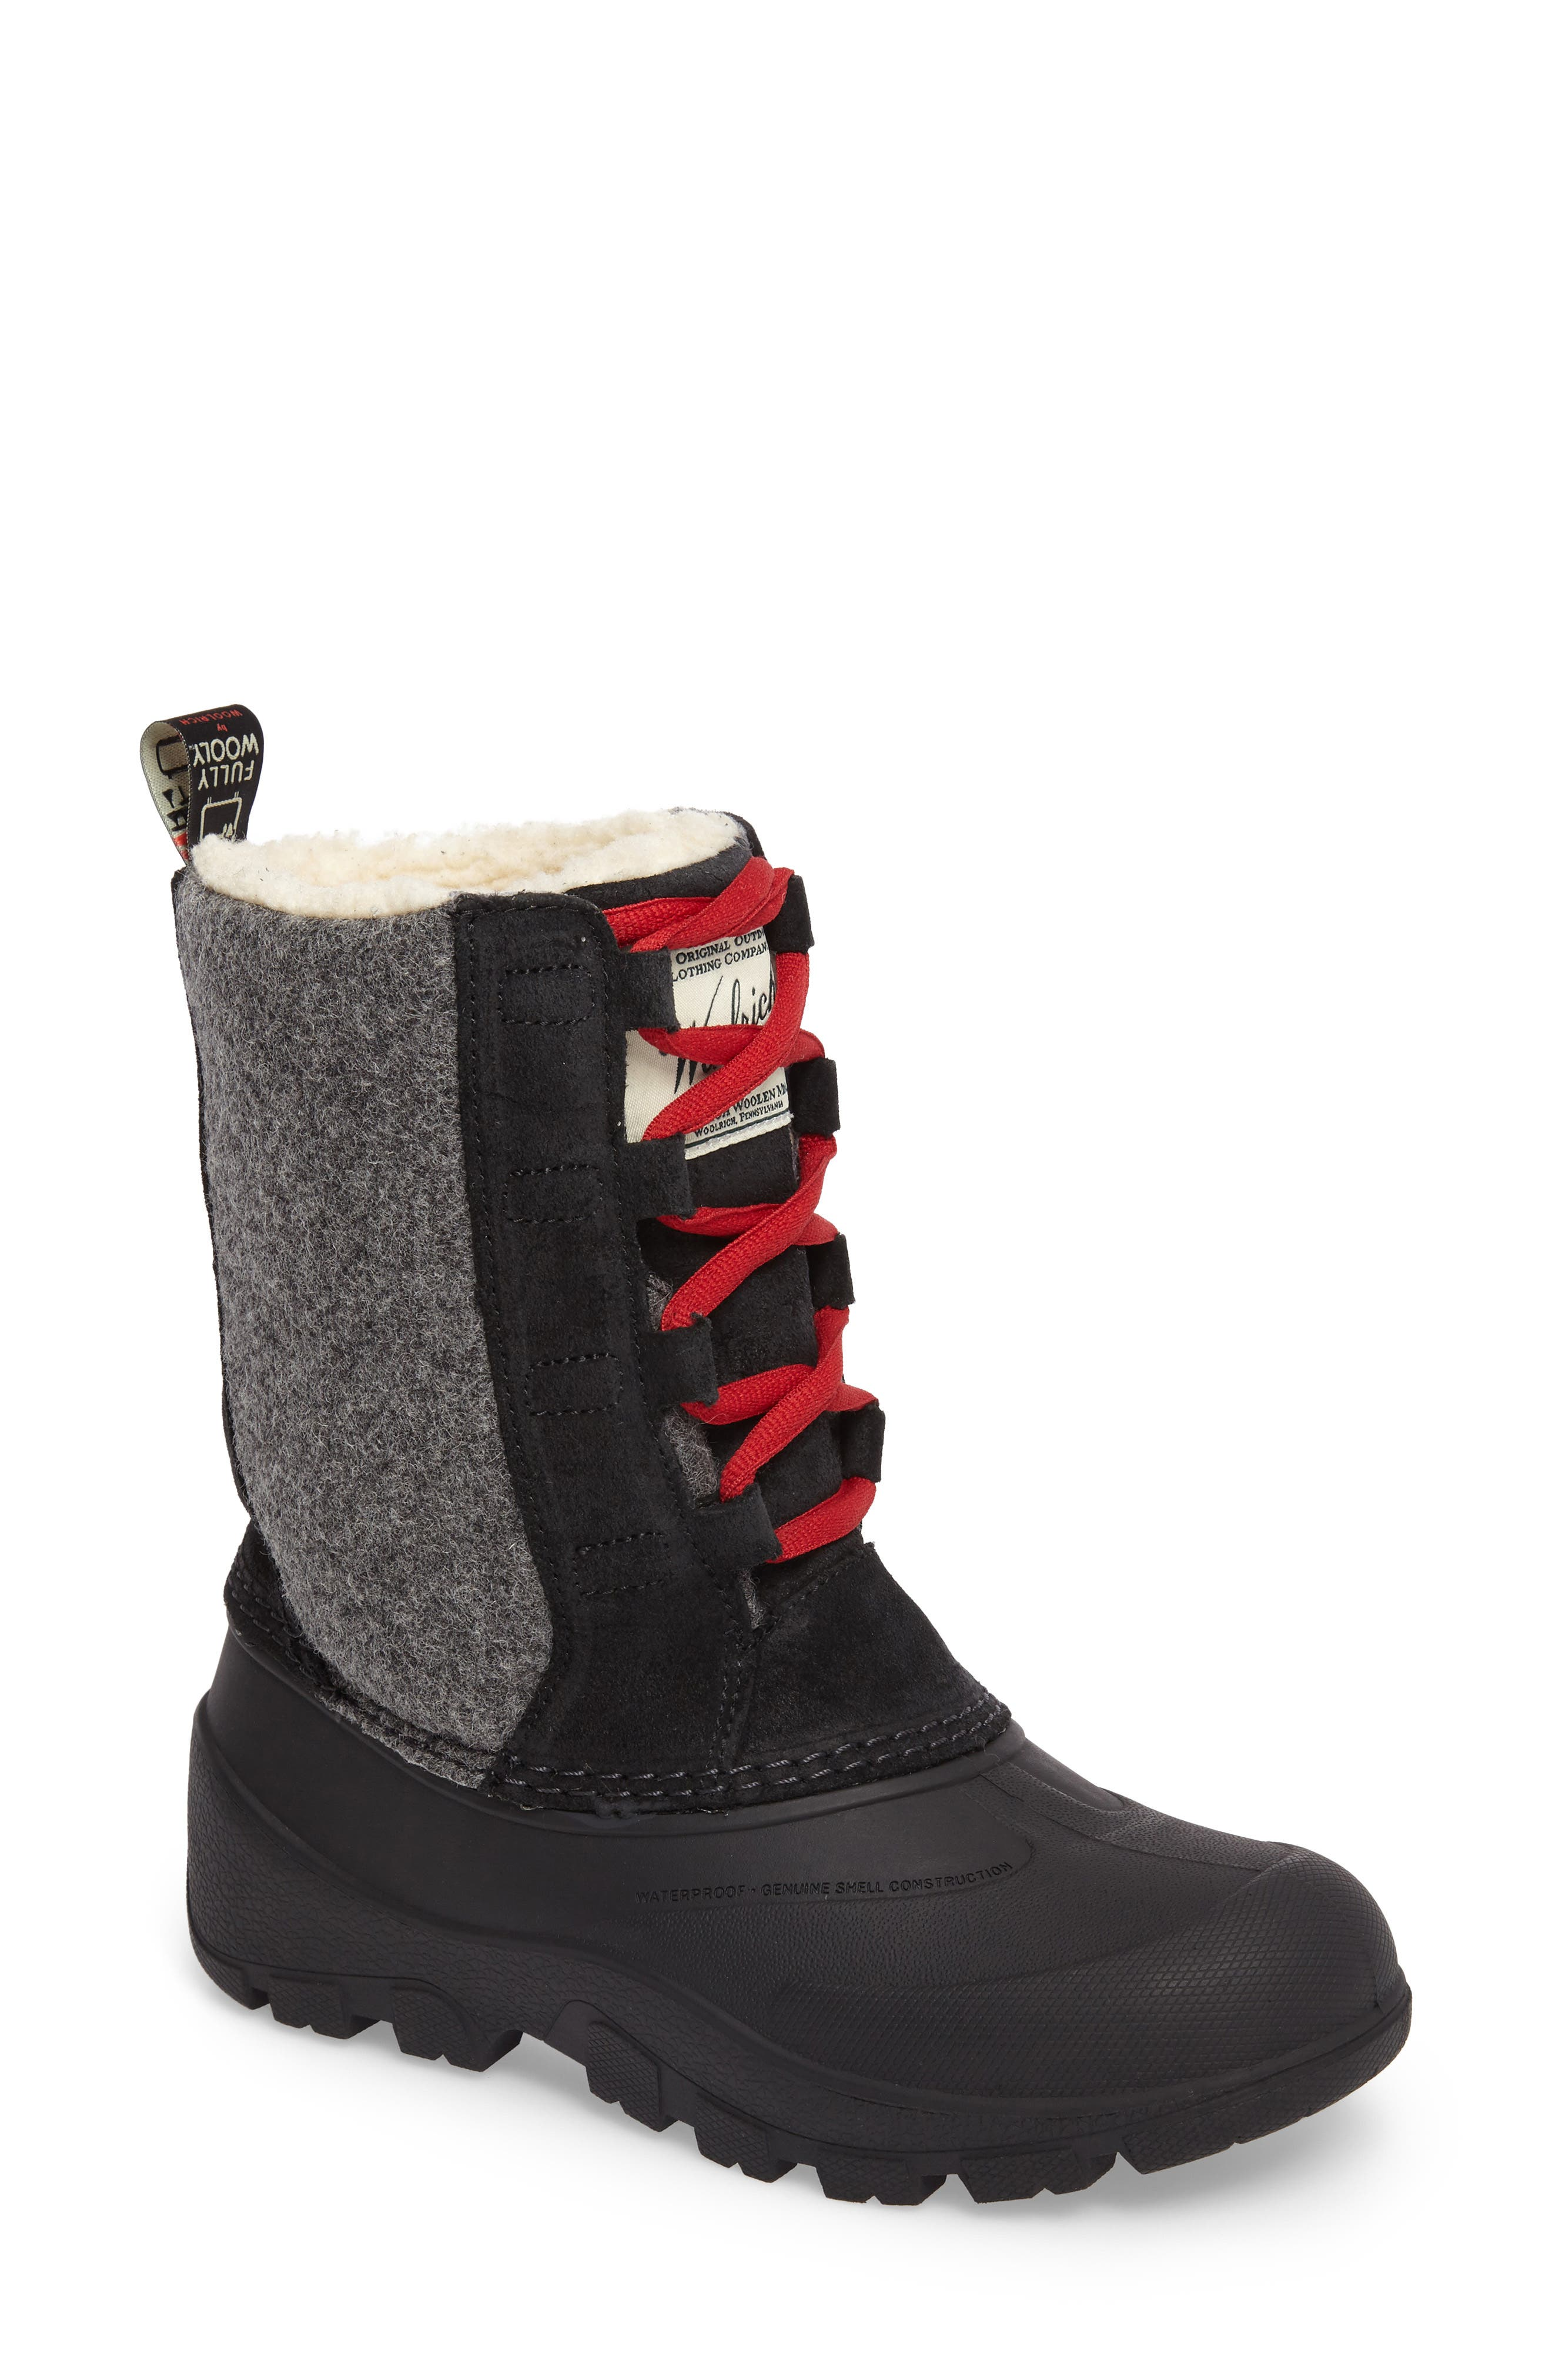 Fully Wooly Tundracat Waterproof Insulated Winter Boot,                             Main thumbnail 1, color,                             Black Leather